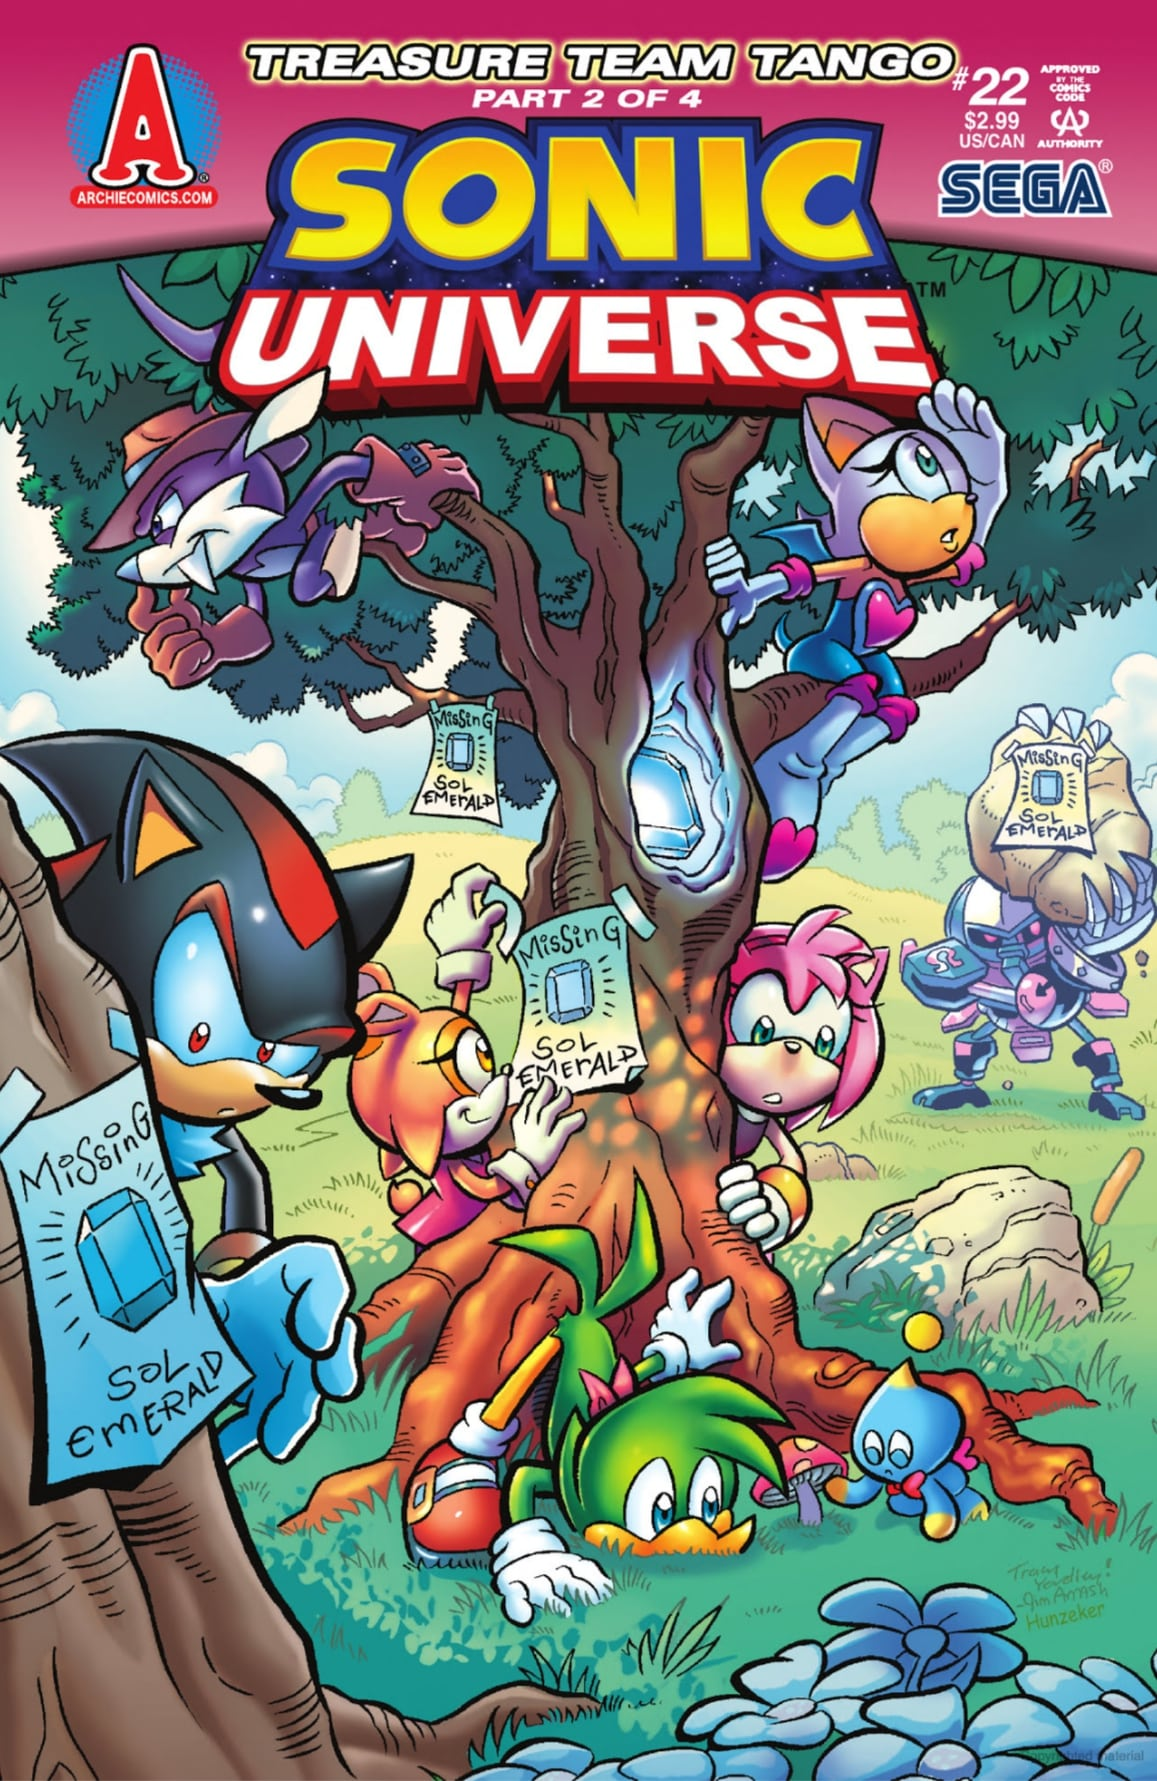 Archie Sonic Universe Issue 22 | Sonic News Network ...